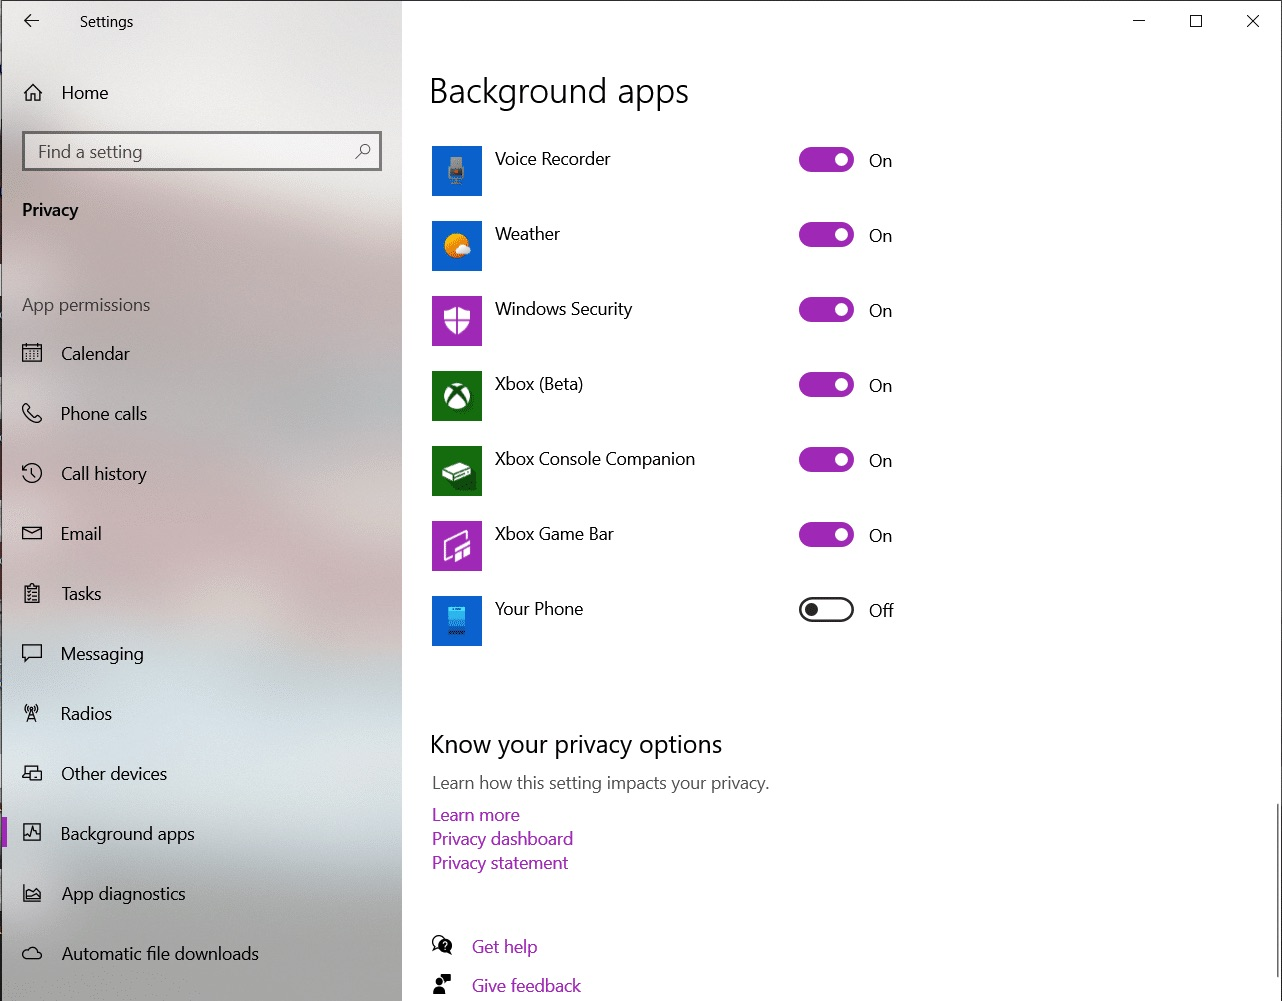 What is YourPhone.exe on Windows 10?